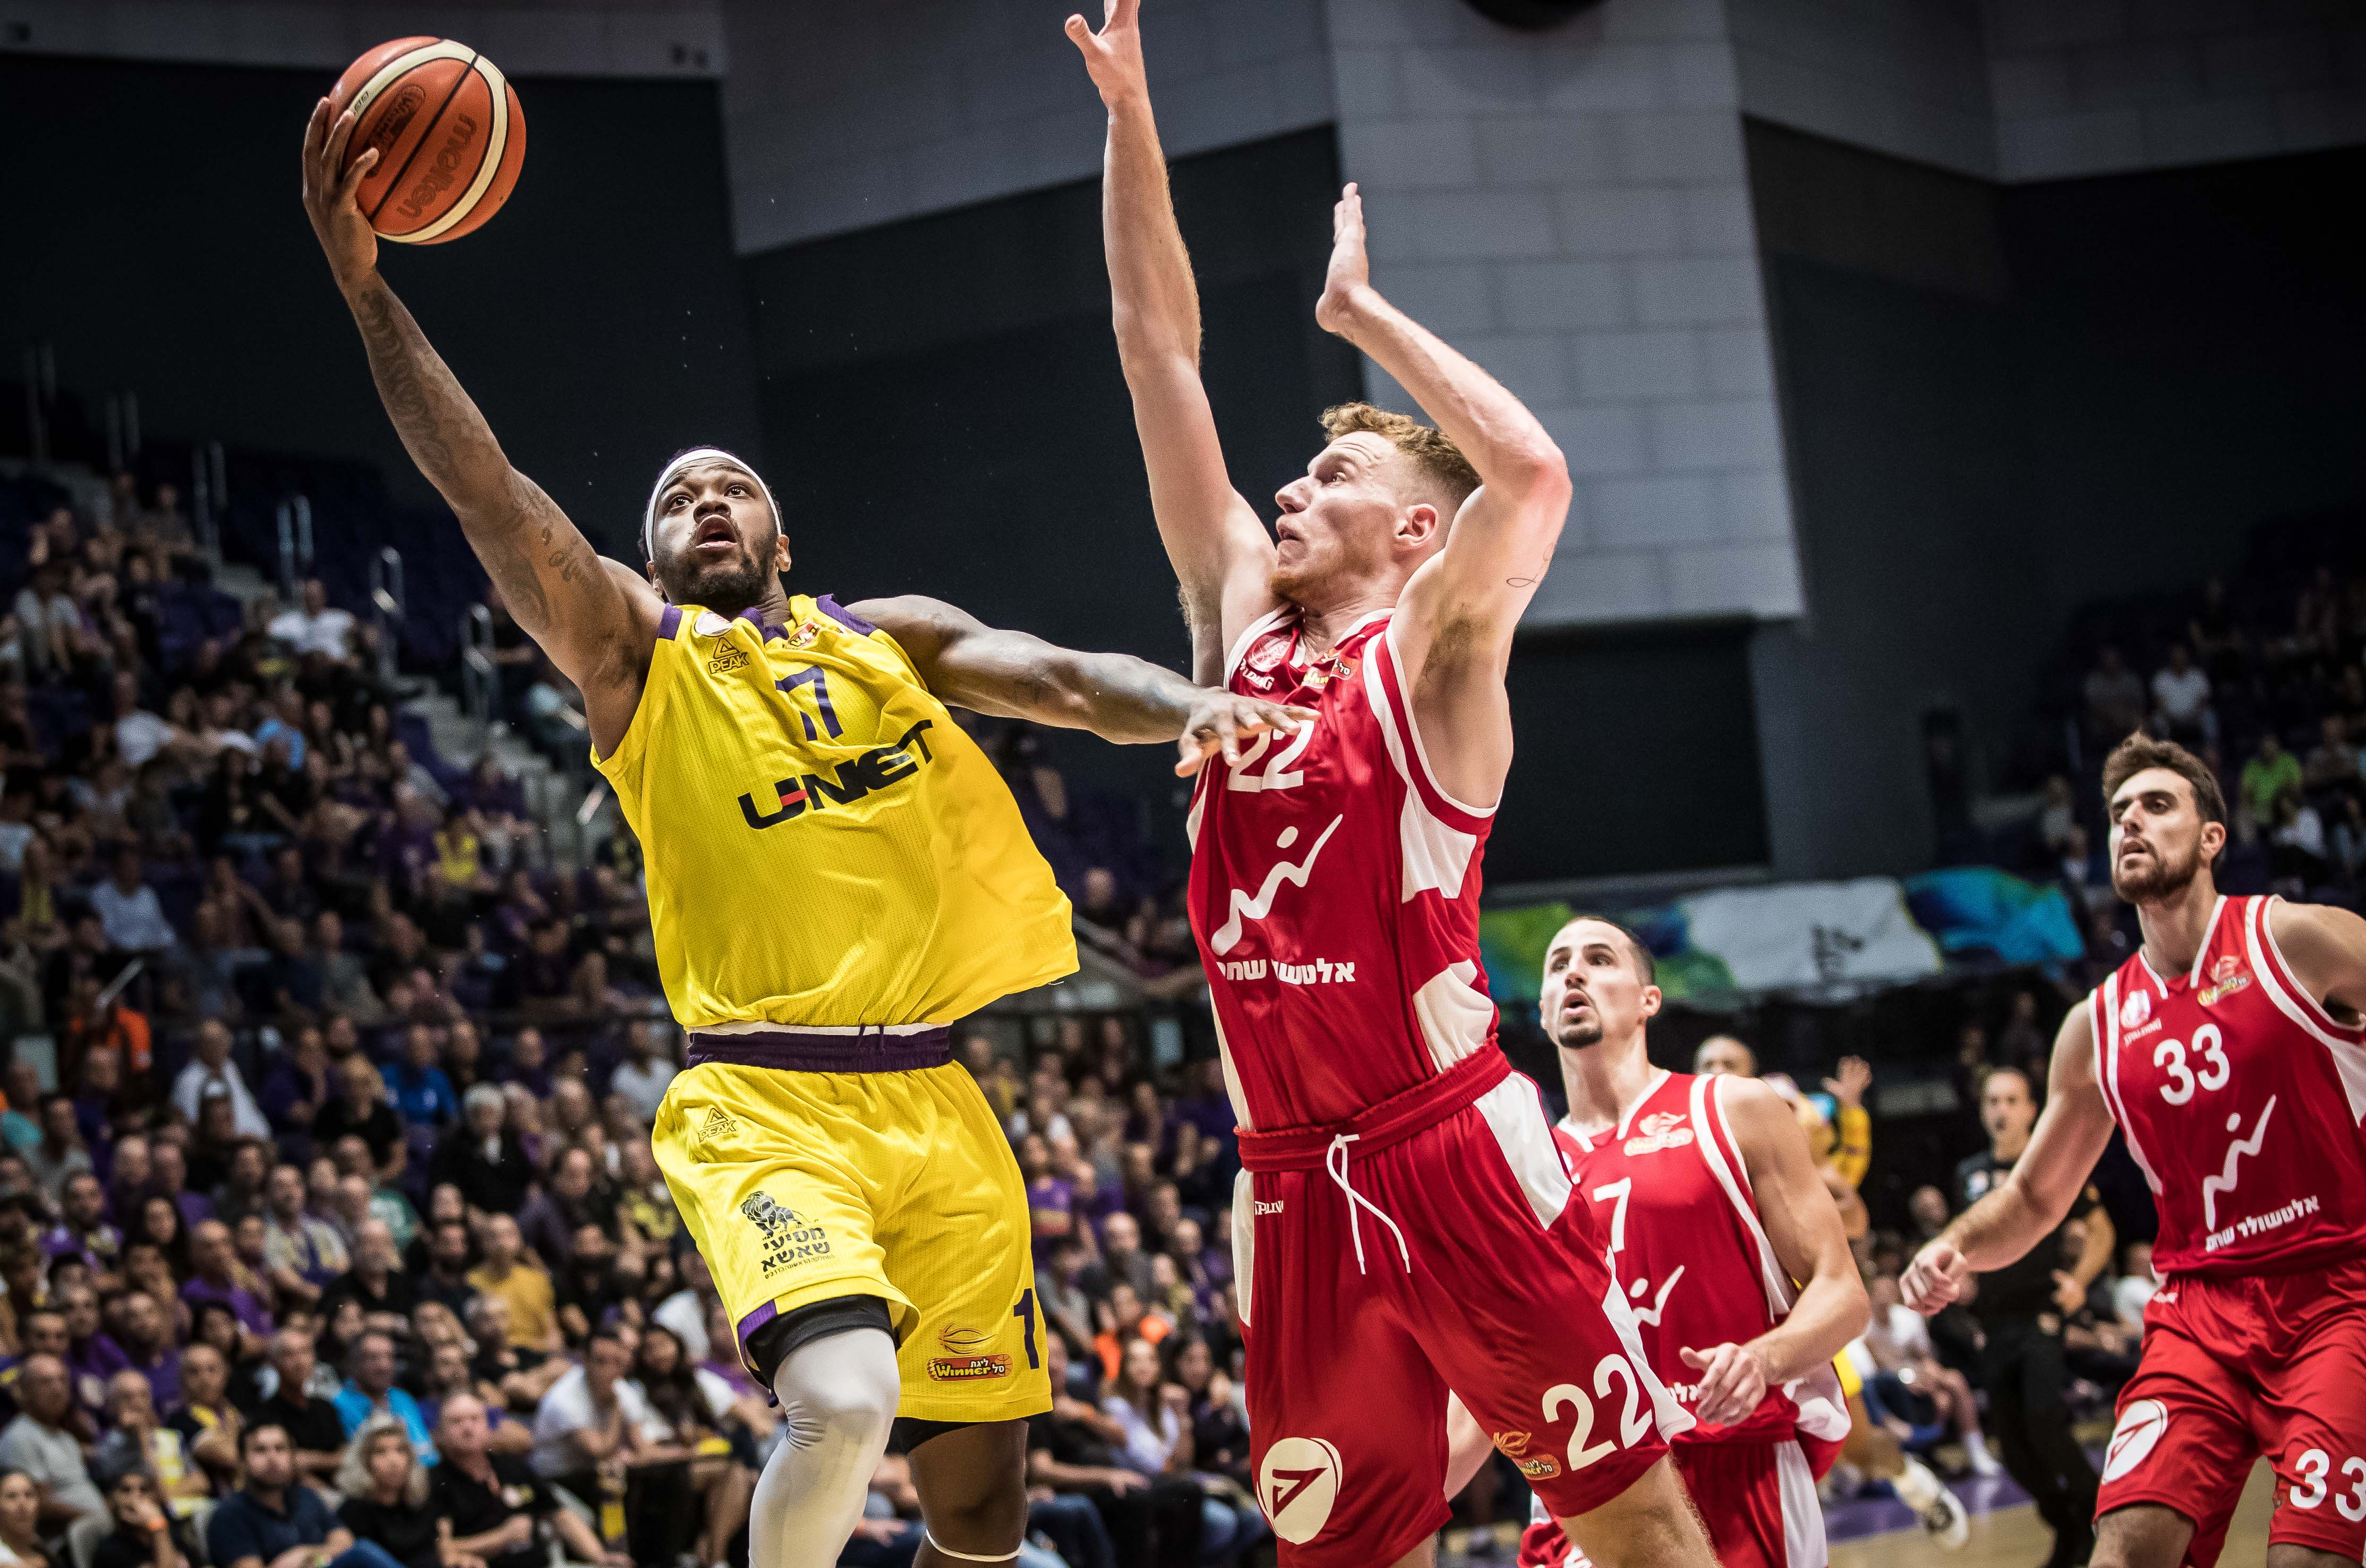 Day 6: Hapoel Holon - Be'er Sheva 92:73